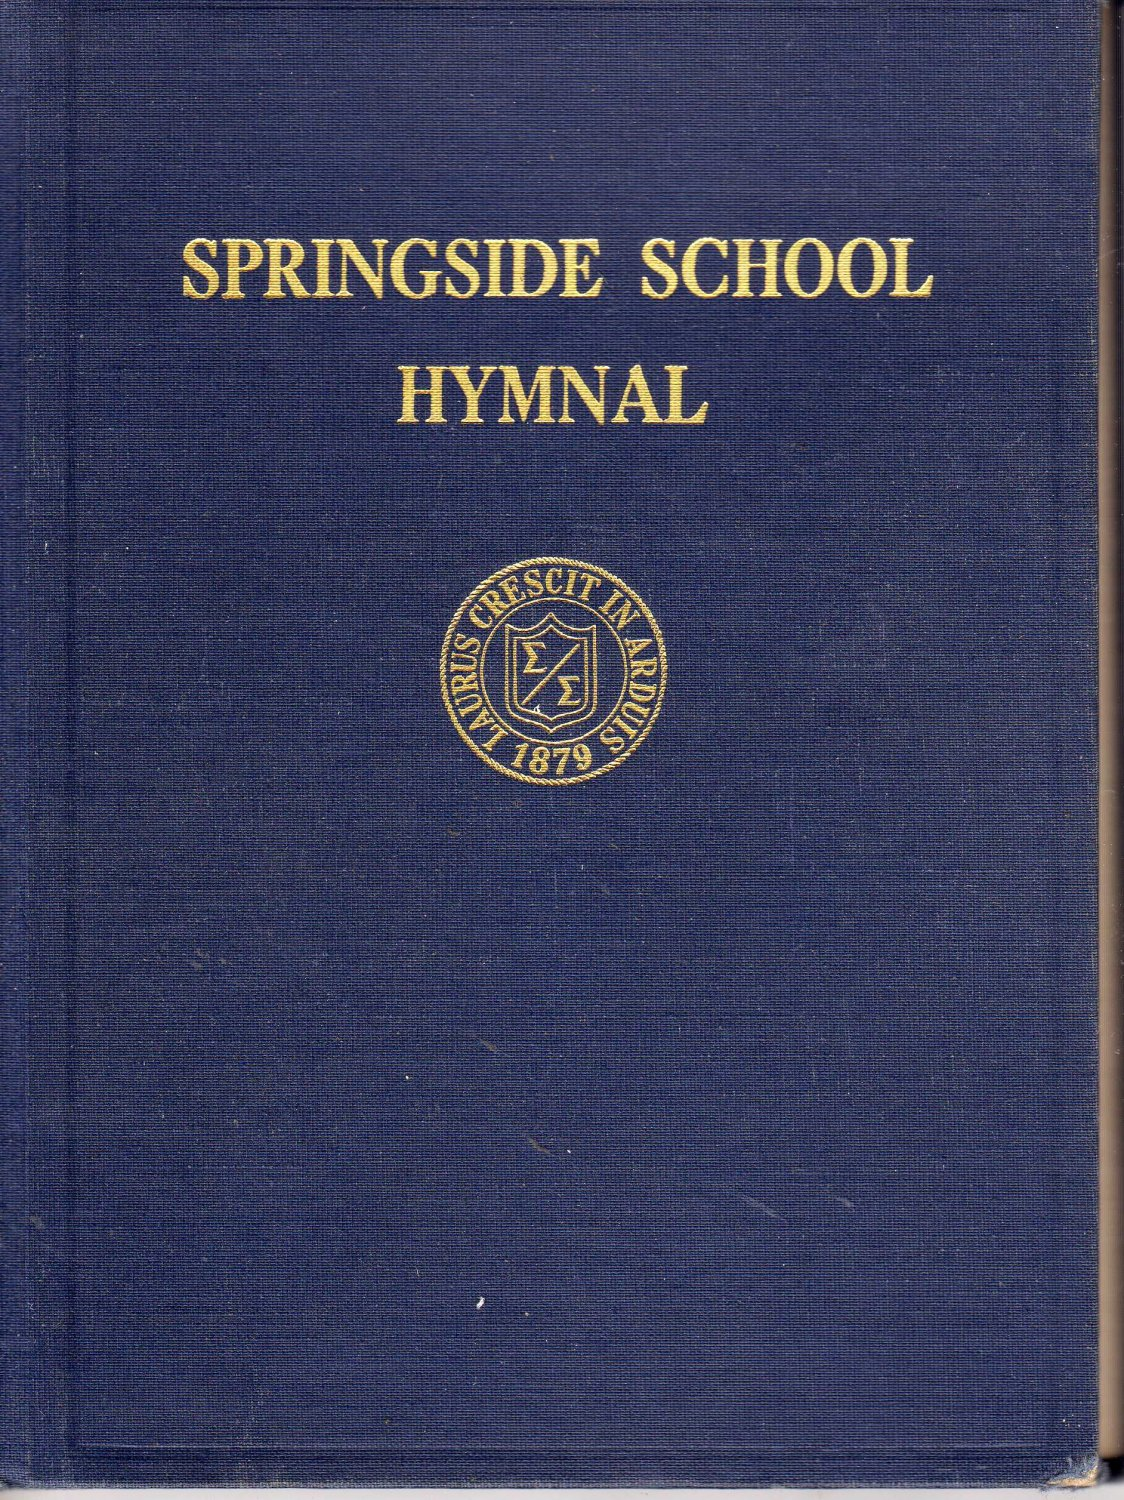 Springside School Hymnal, The Middlesex Hymn Book, 3rd edition by Athur Motter Lamb(Hardcover 1952)